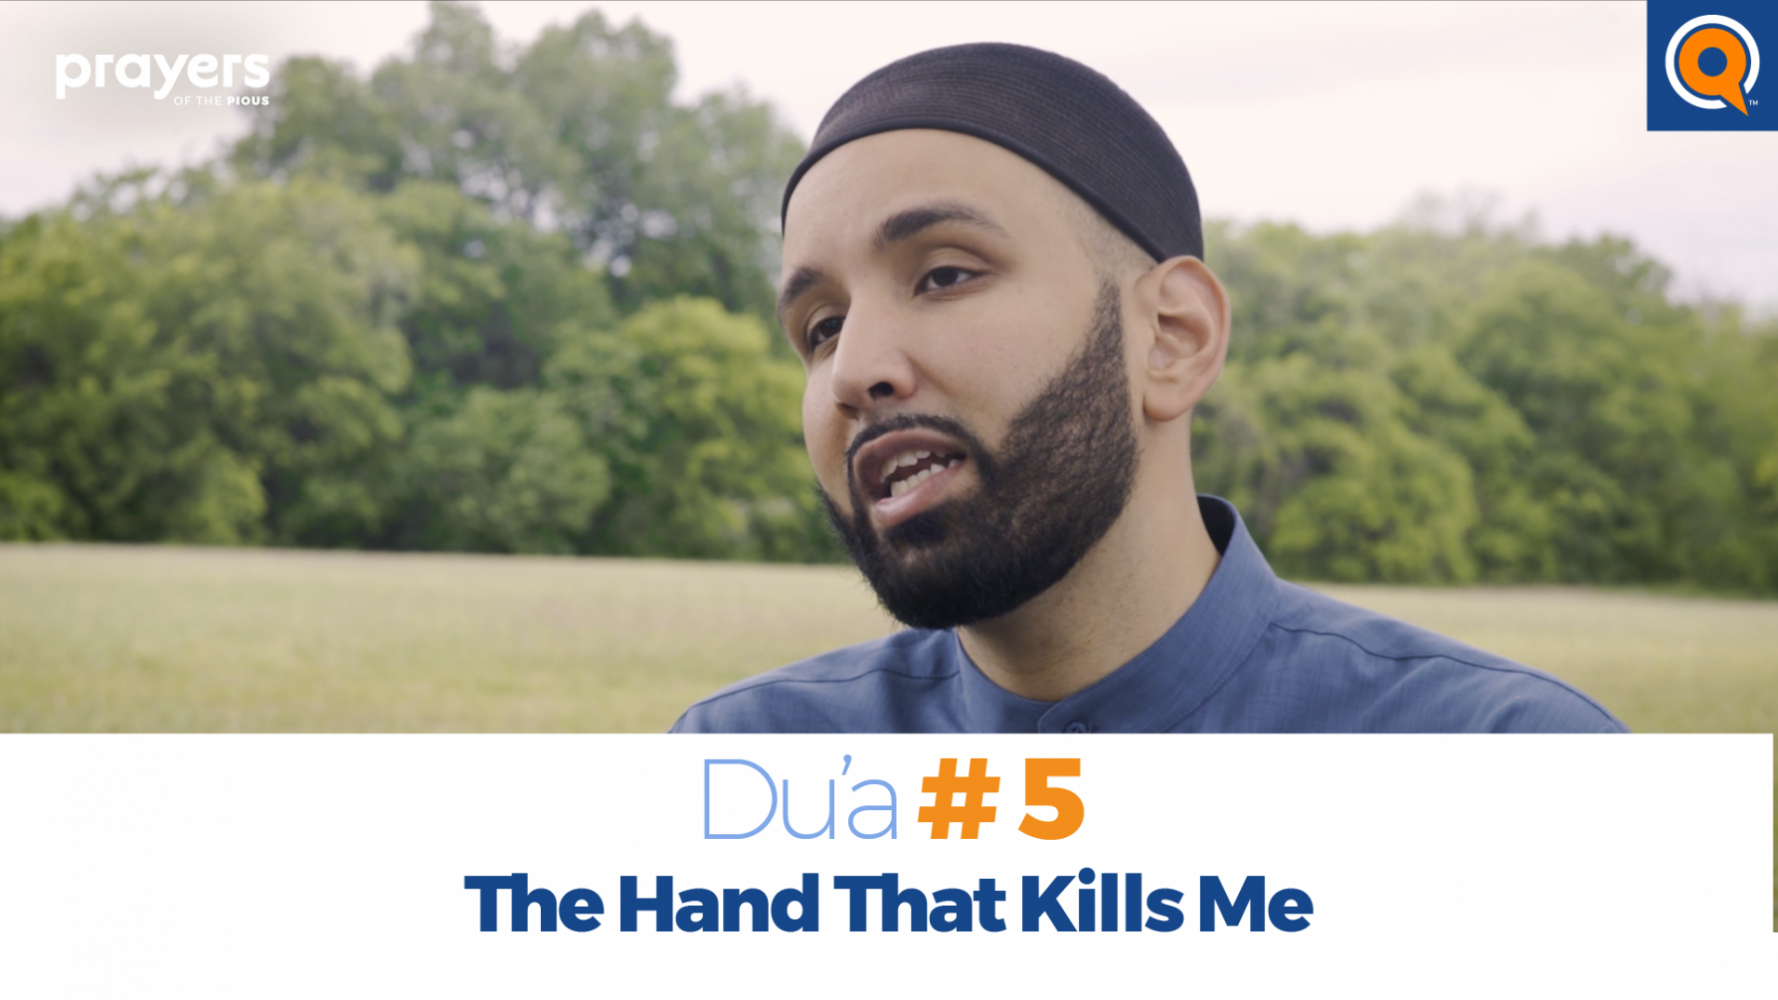 Episode 5: The Hand That Kills Me | Prayers of the Pious